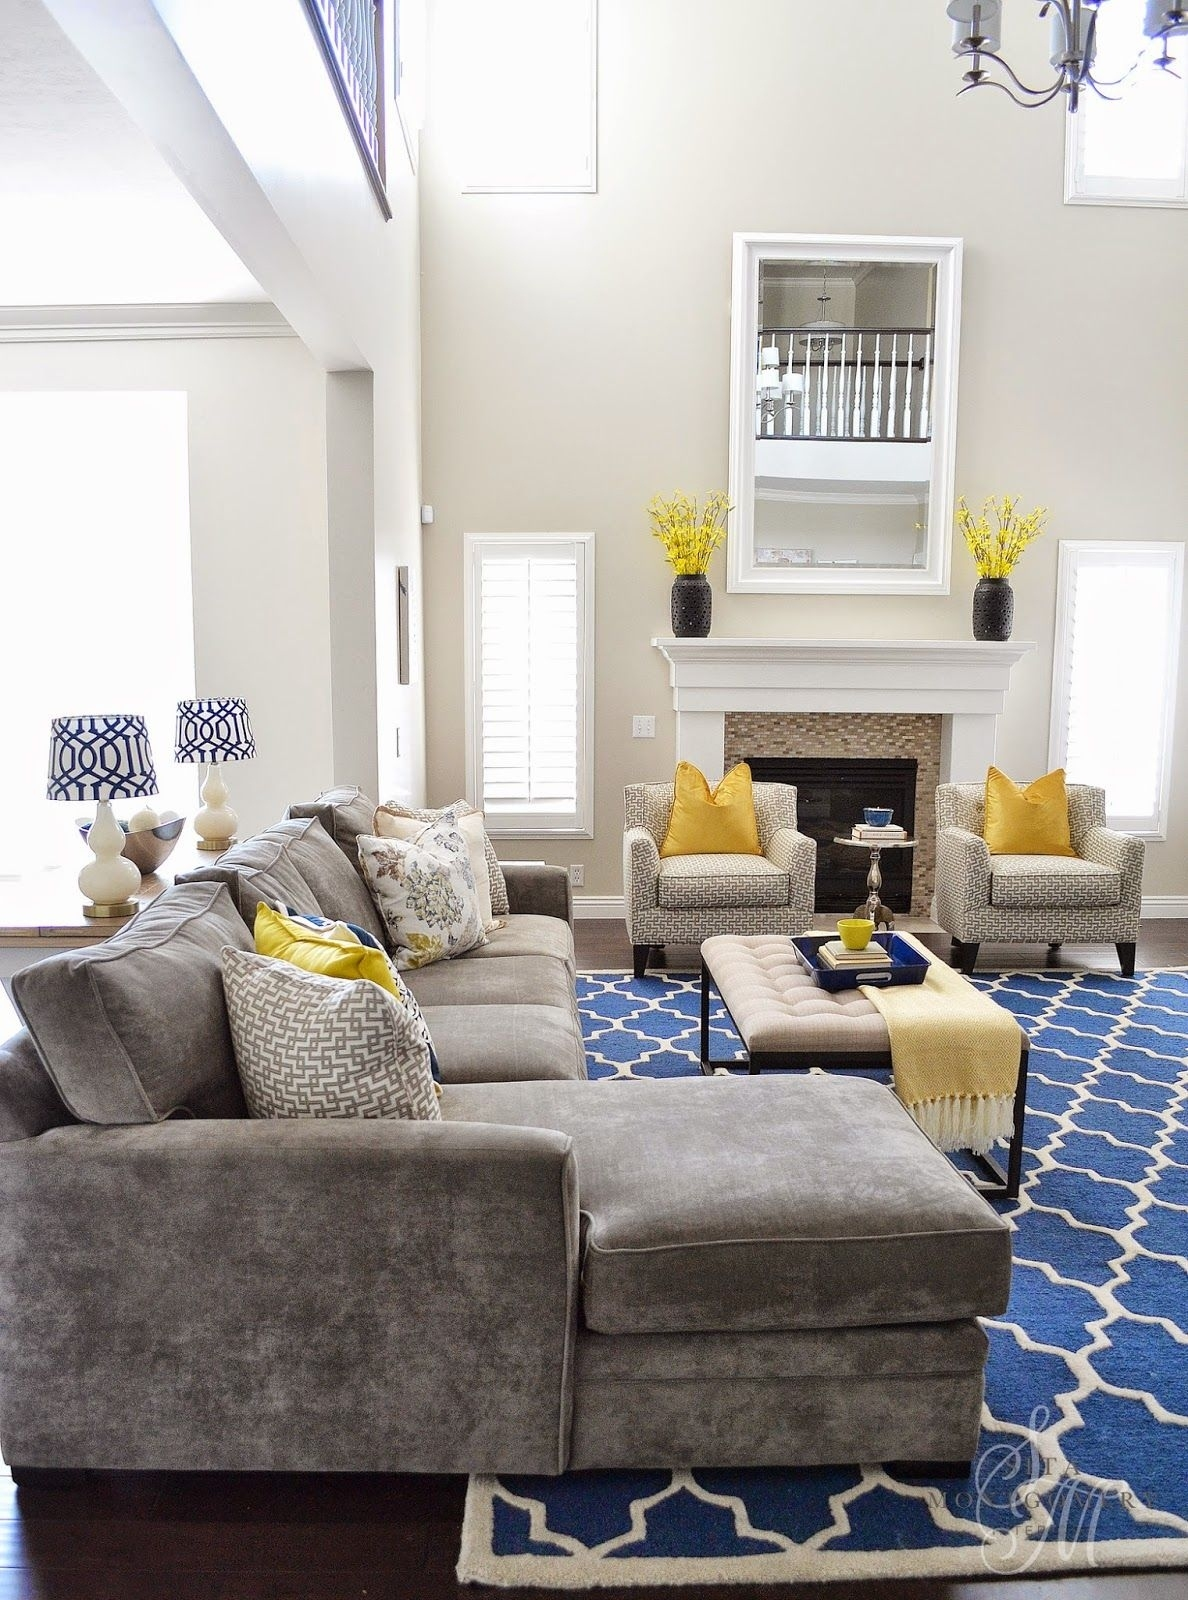 Sita Montgomery Interiors: Client Project Reveal: The intended for Gray White And Yellow Living Rooms